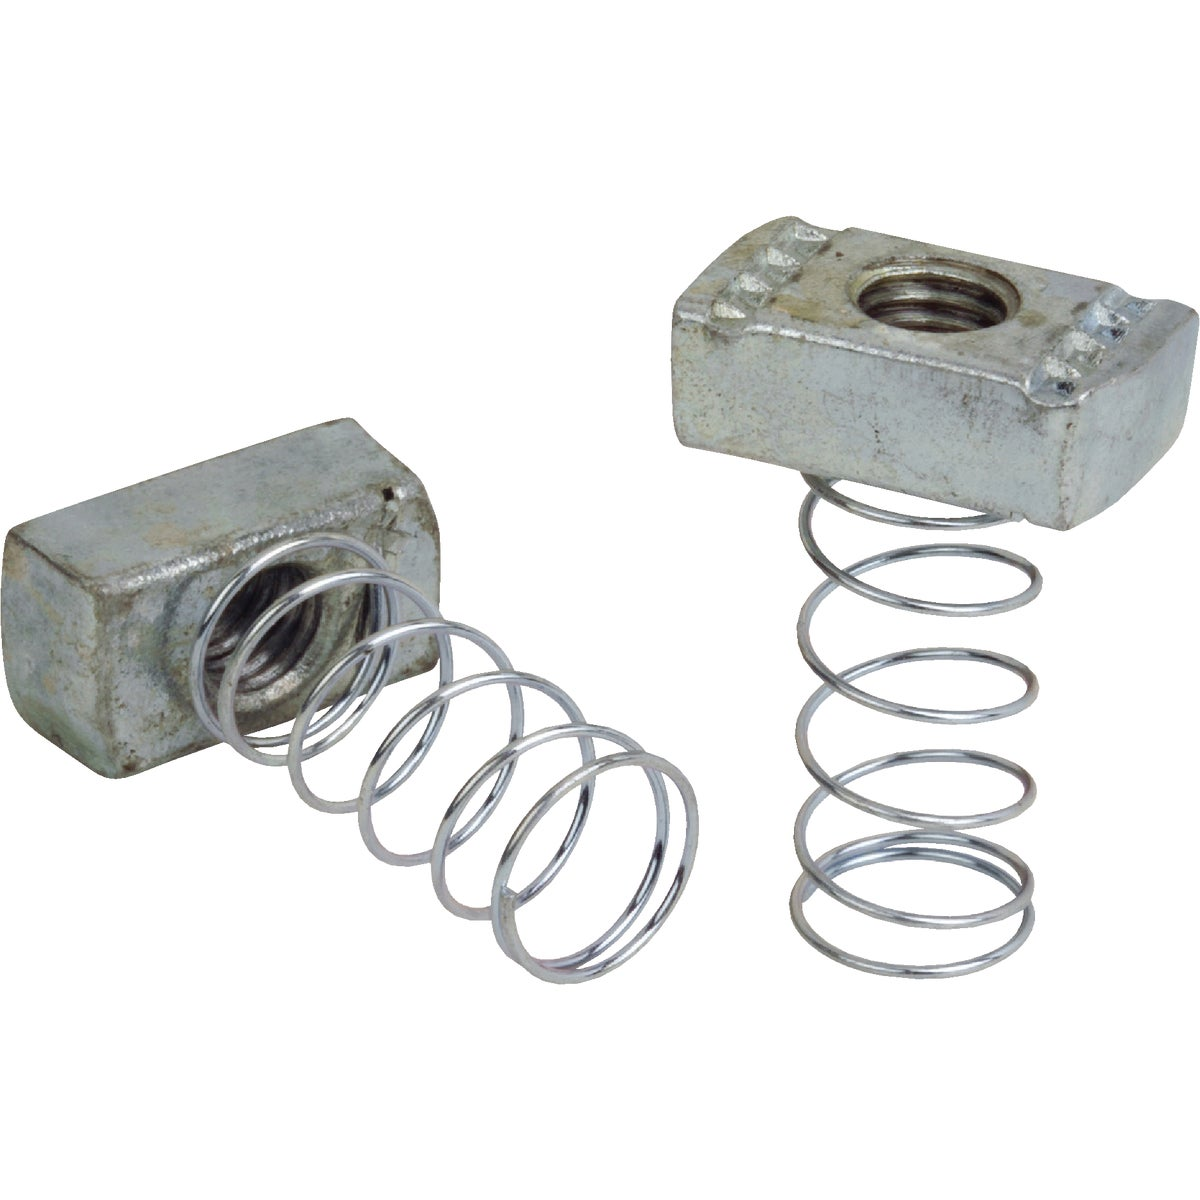 "5PC 1/4"" SPRING NUT - ZA100-1/4EG-10 by Thomas & Betts"